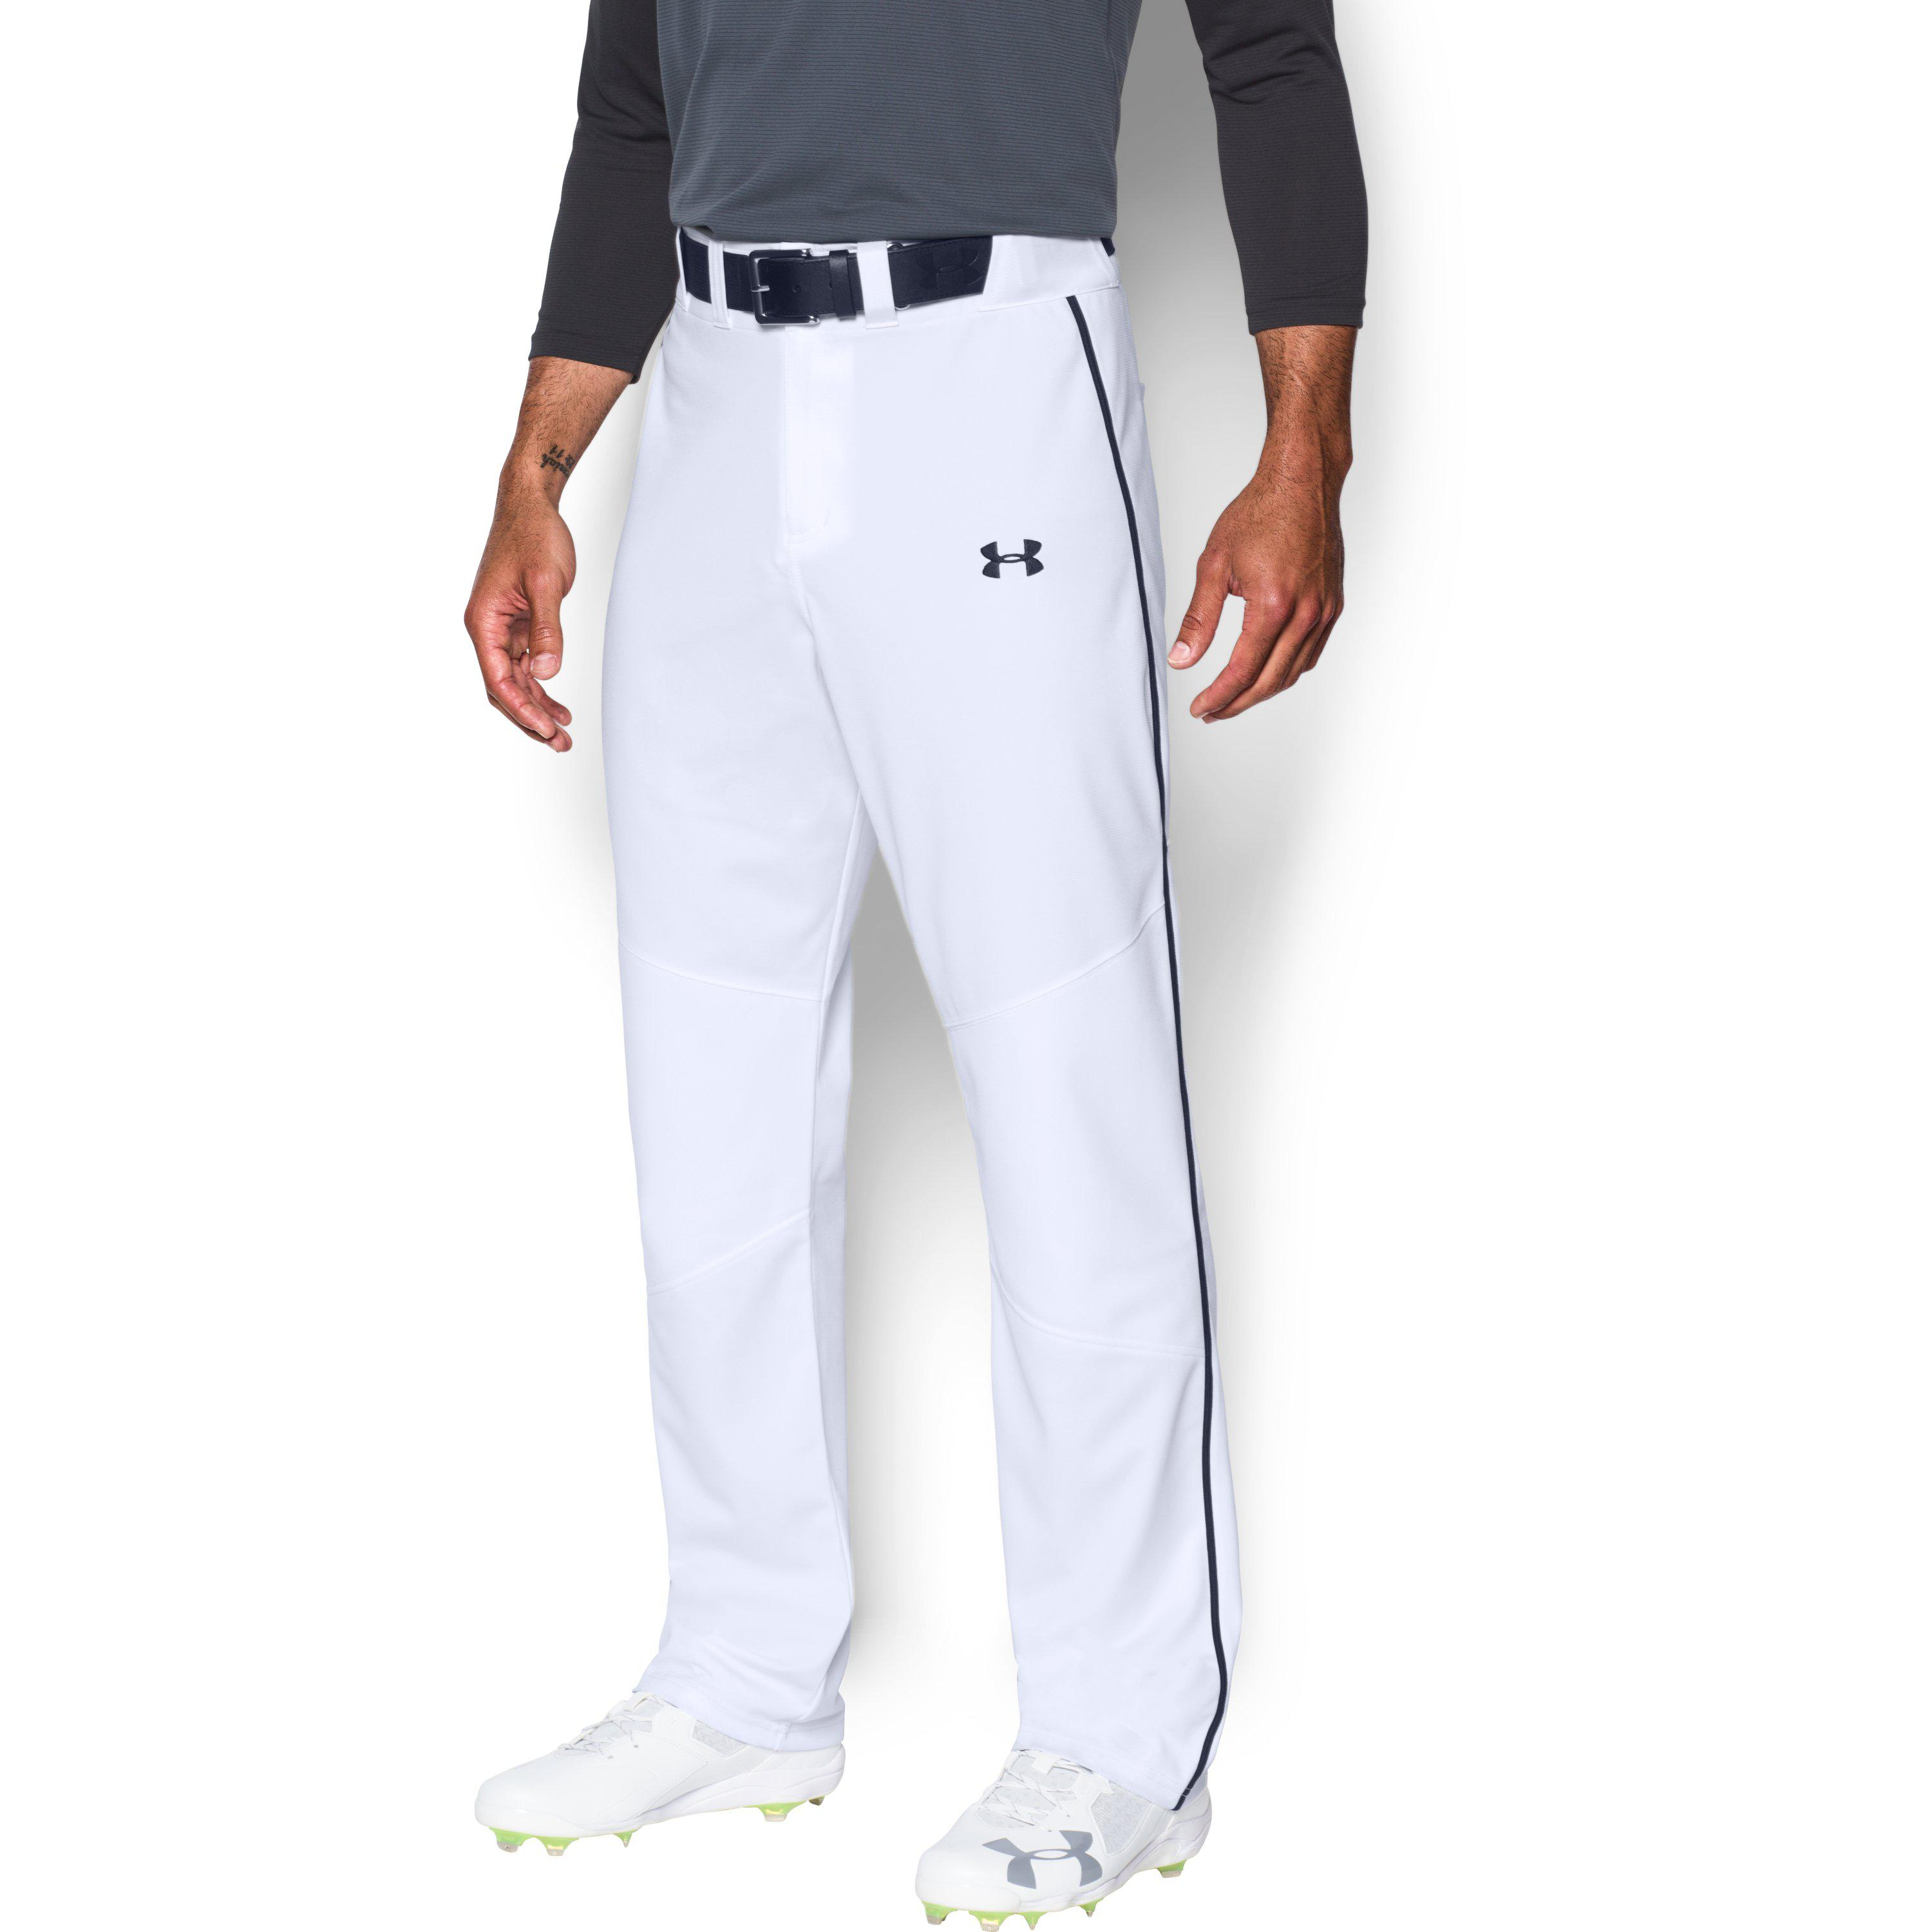 3f736114c5d Lyst Under Armour Heater Piped Baseball In White For Men. Under Armour  Clean Up Piped Pants ...